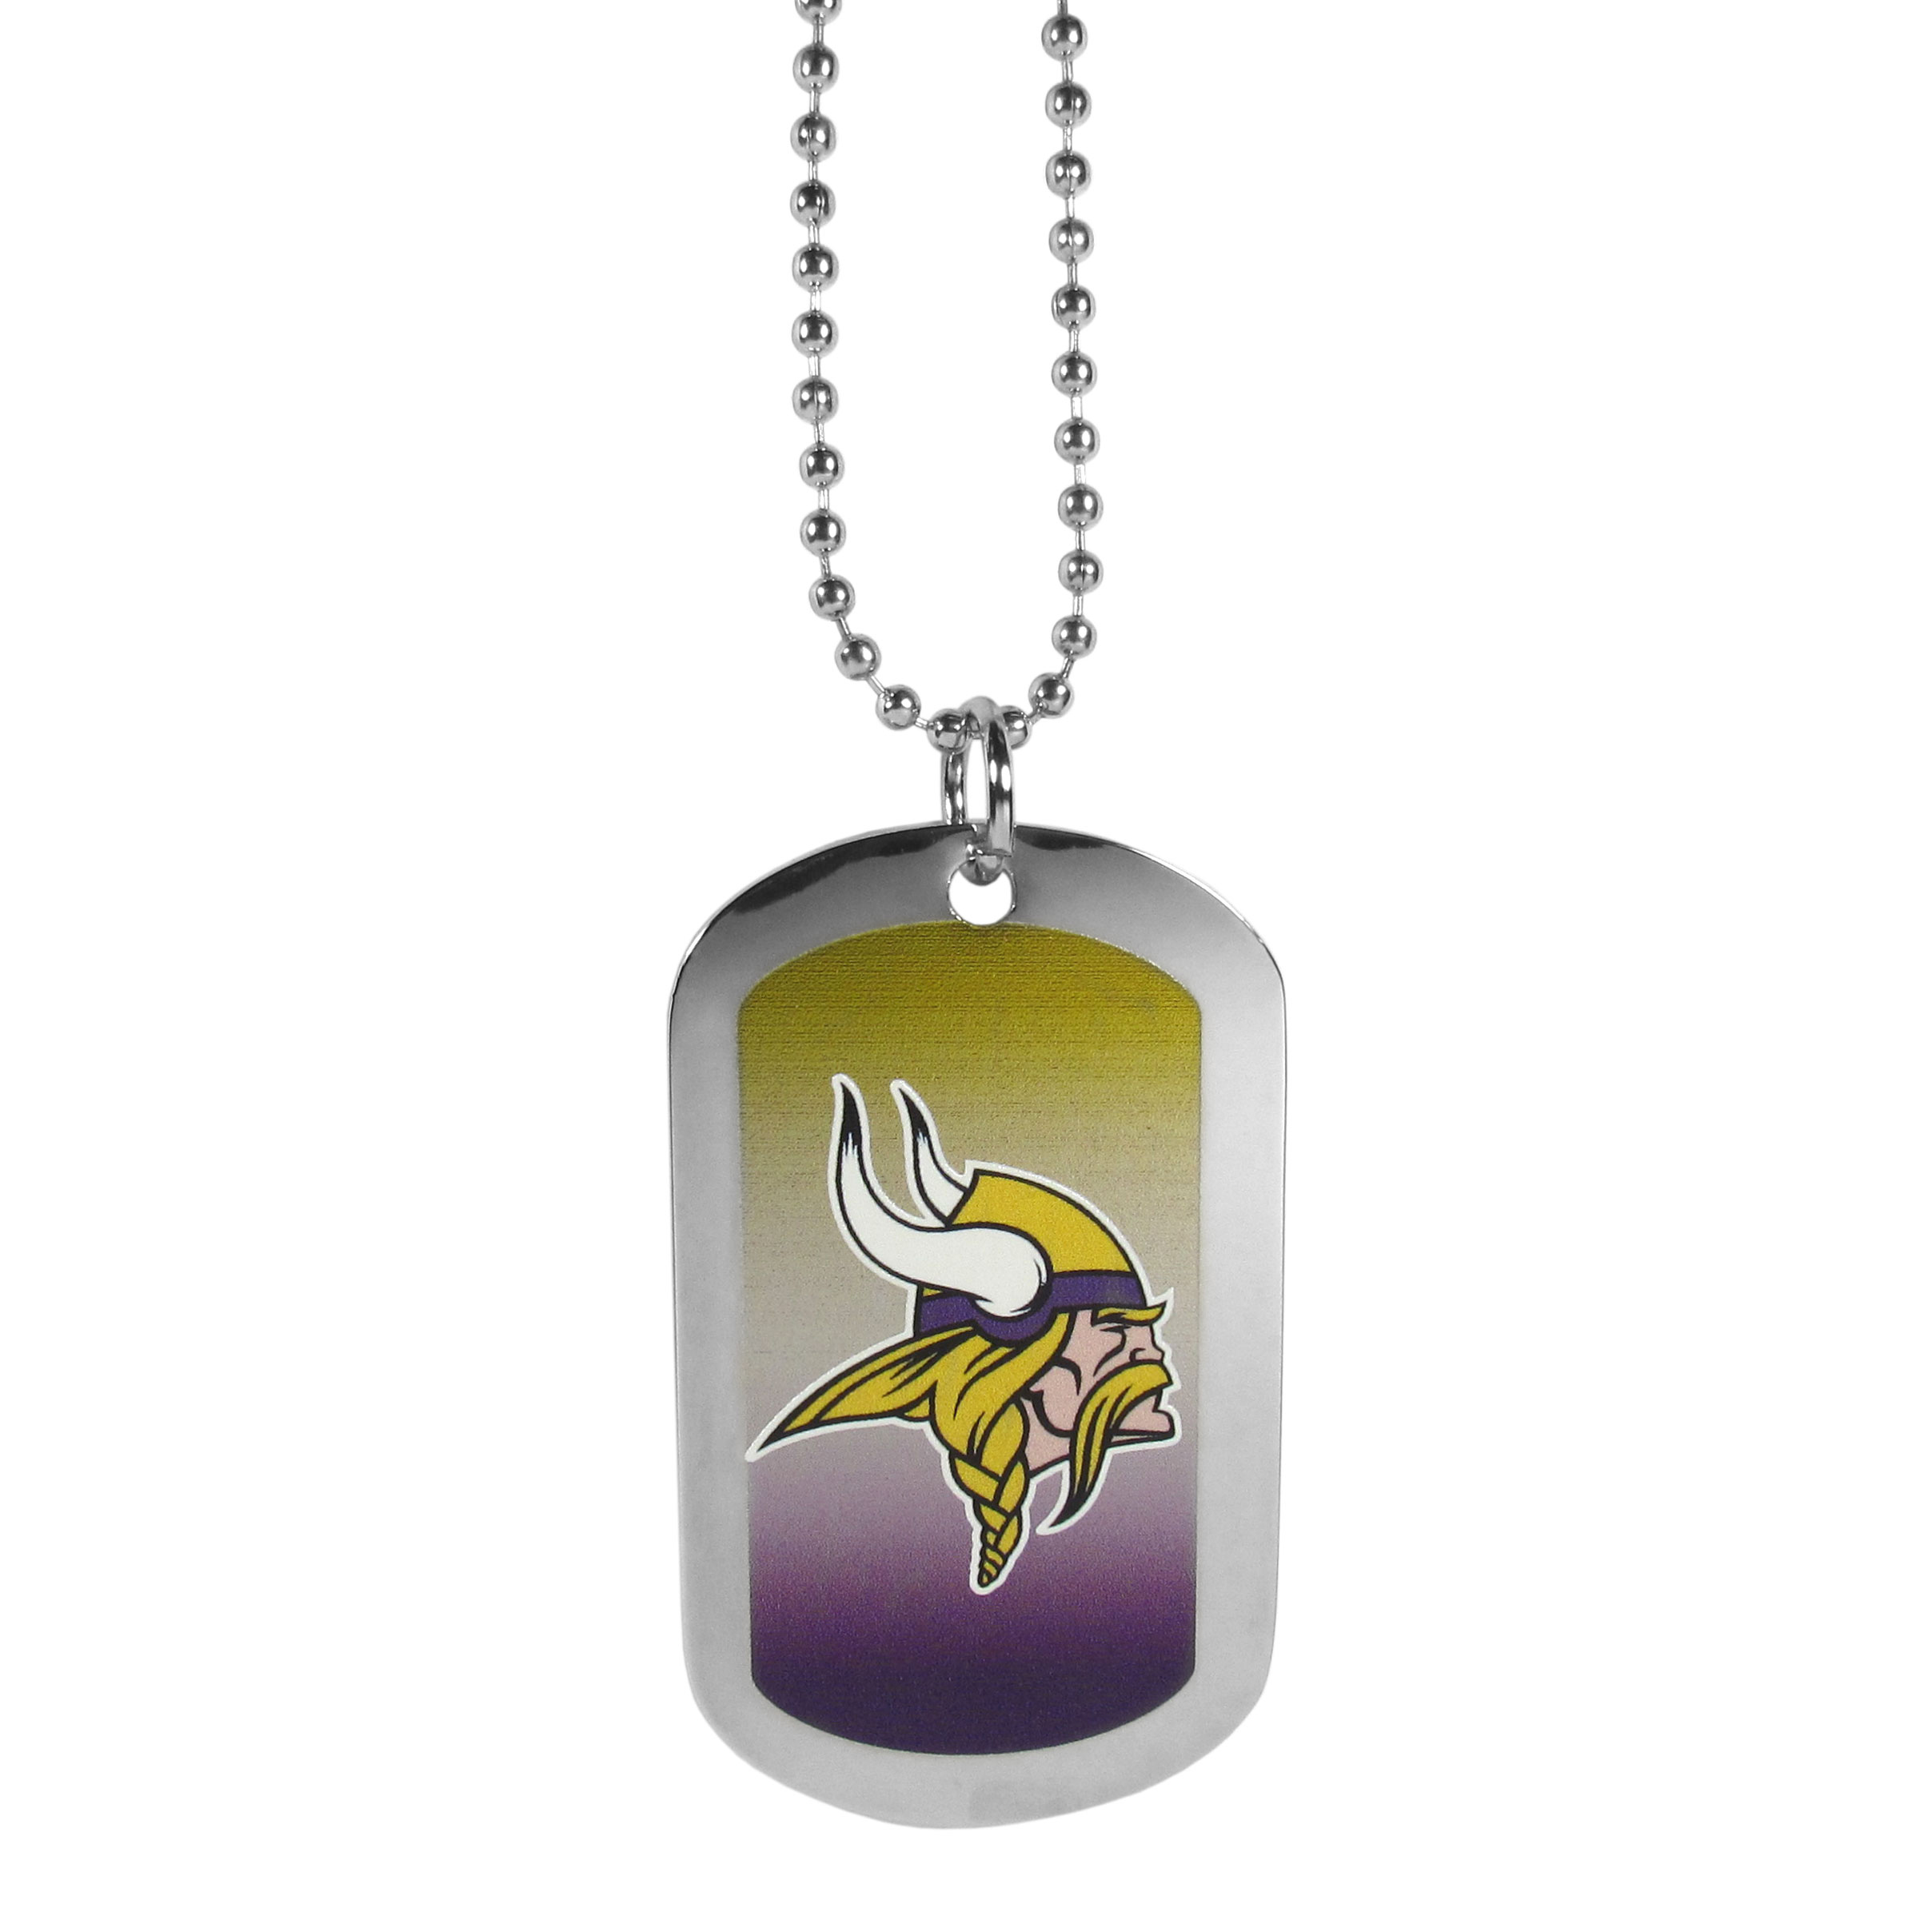 Minnesota Vikings Team Tag Necklace - Dog tag necklaces are a fashion statement that is here to stay. The sporty version of the classic tag features a gradient print in team colors featuring a full color team logo over a high polish tag to create a bold and sporty look. The tag comes on a 26 inch ball chain with a ball and joint clasp. Any Minnesota Vikings would be proud to wear this attractive fashion accessory.